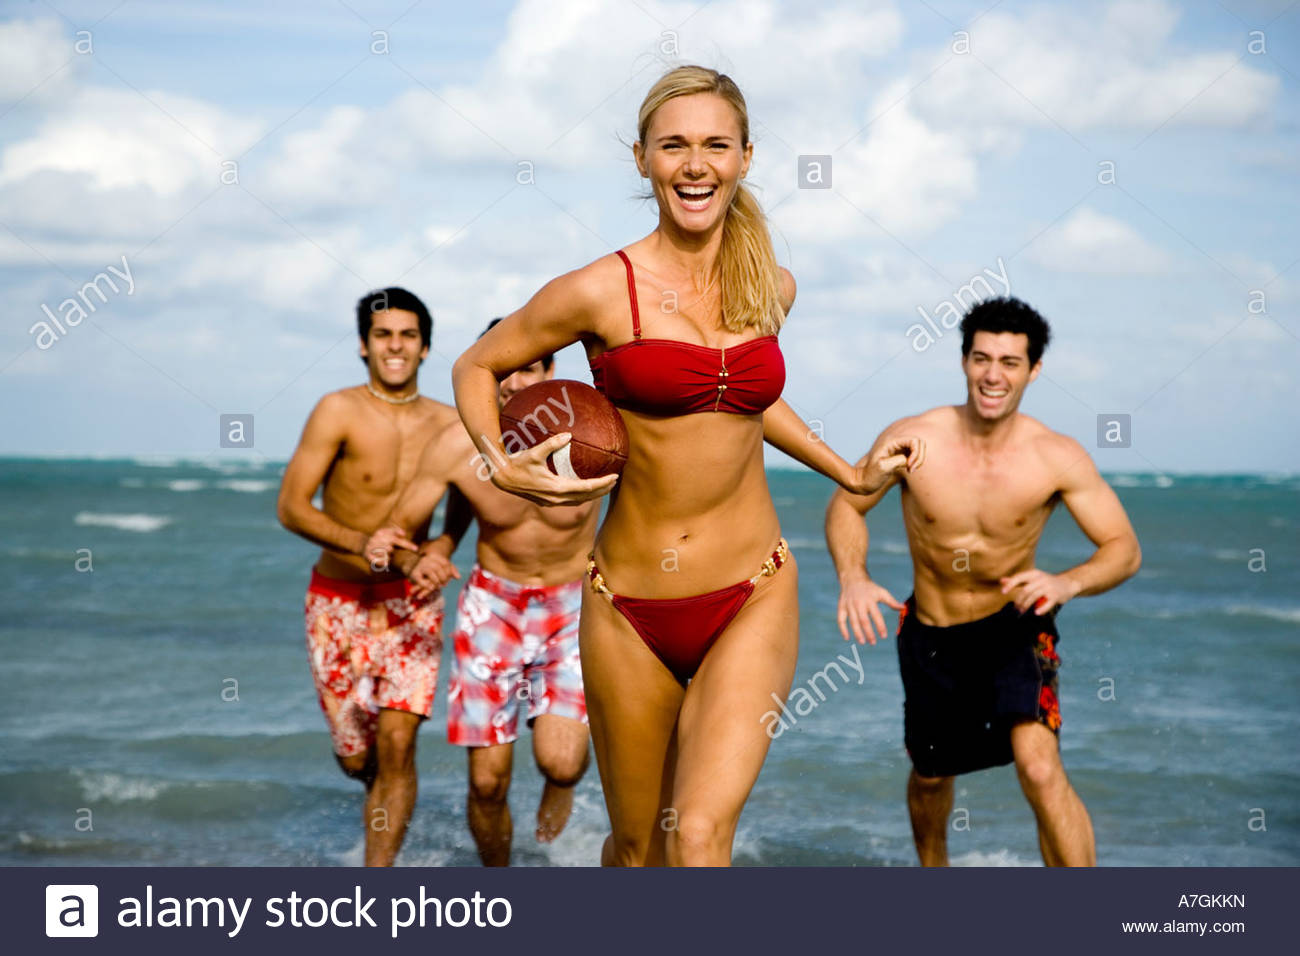 A young woman in a bikini being chased by three men - Stock Image